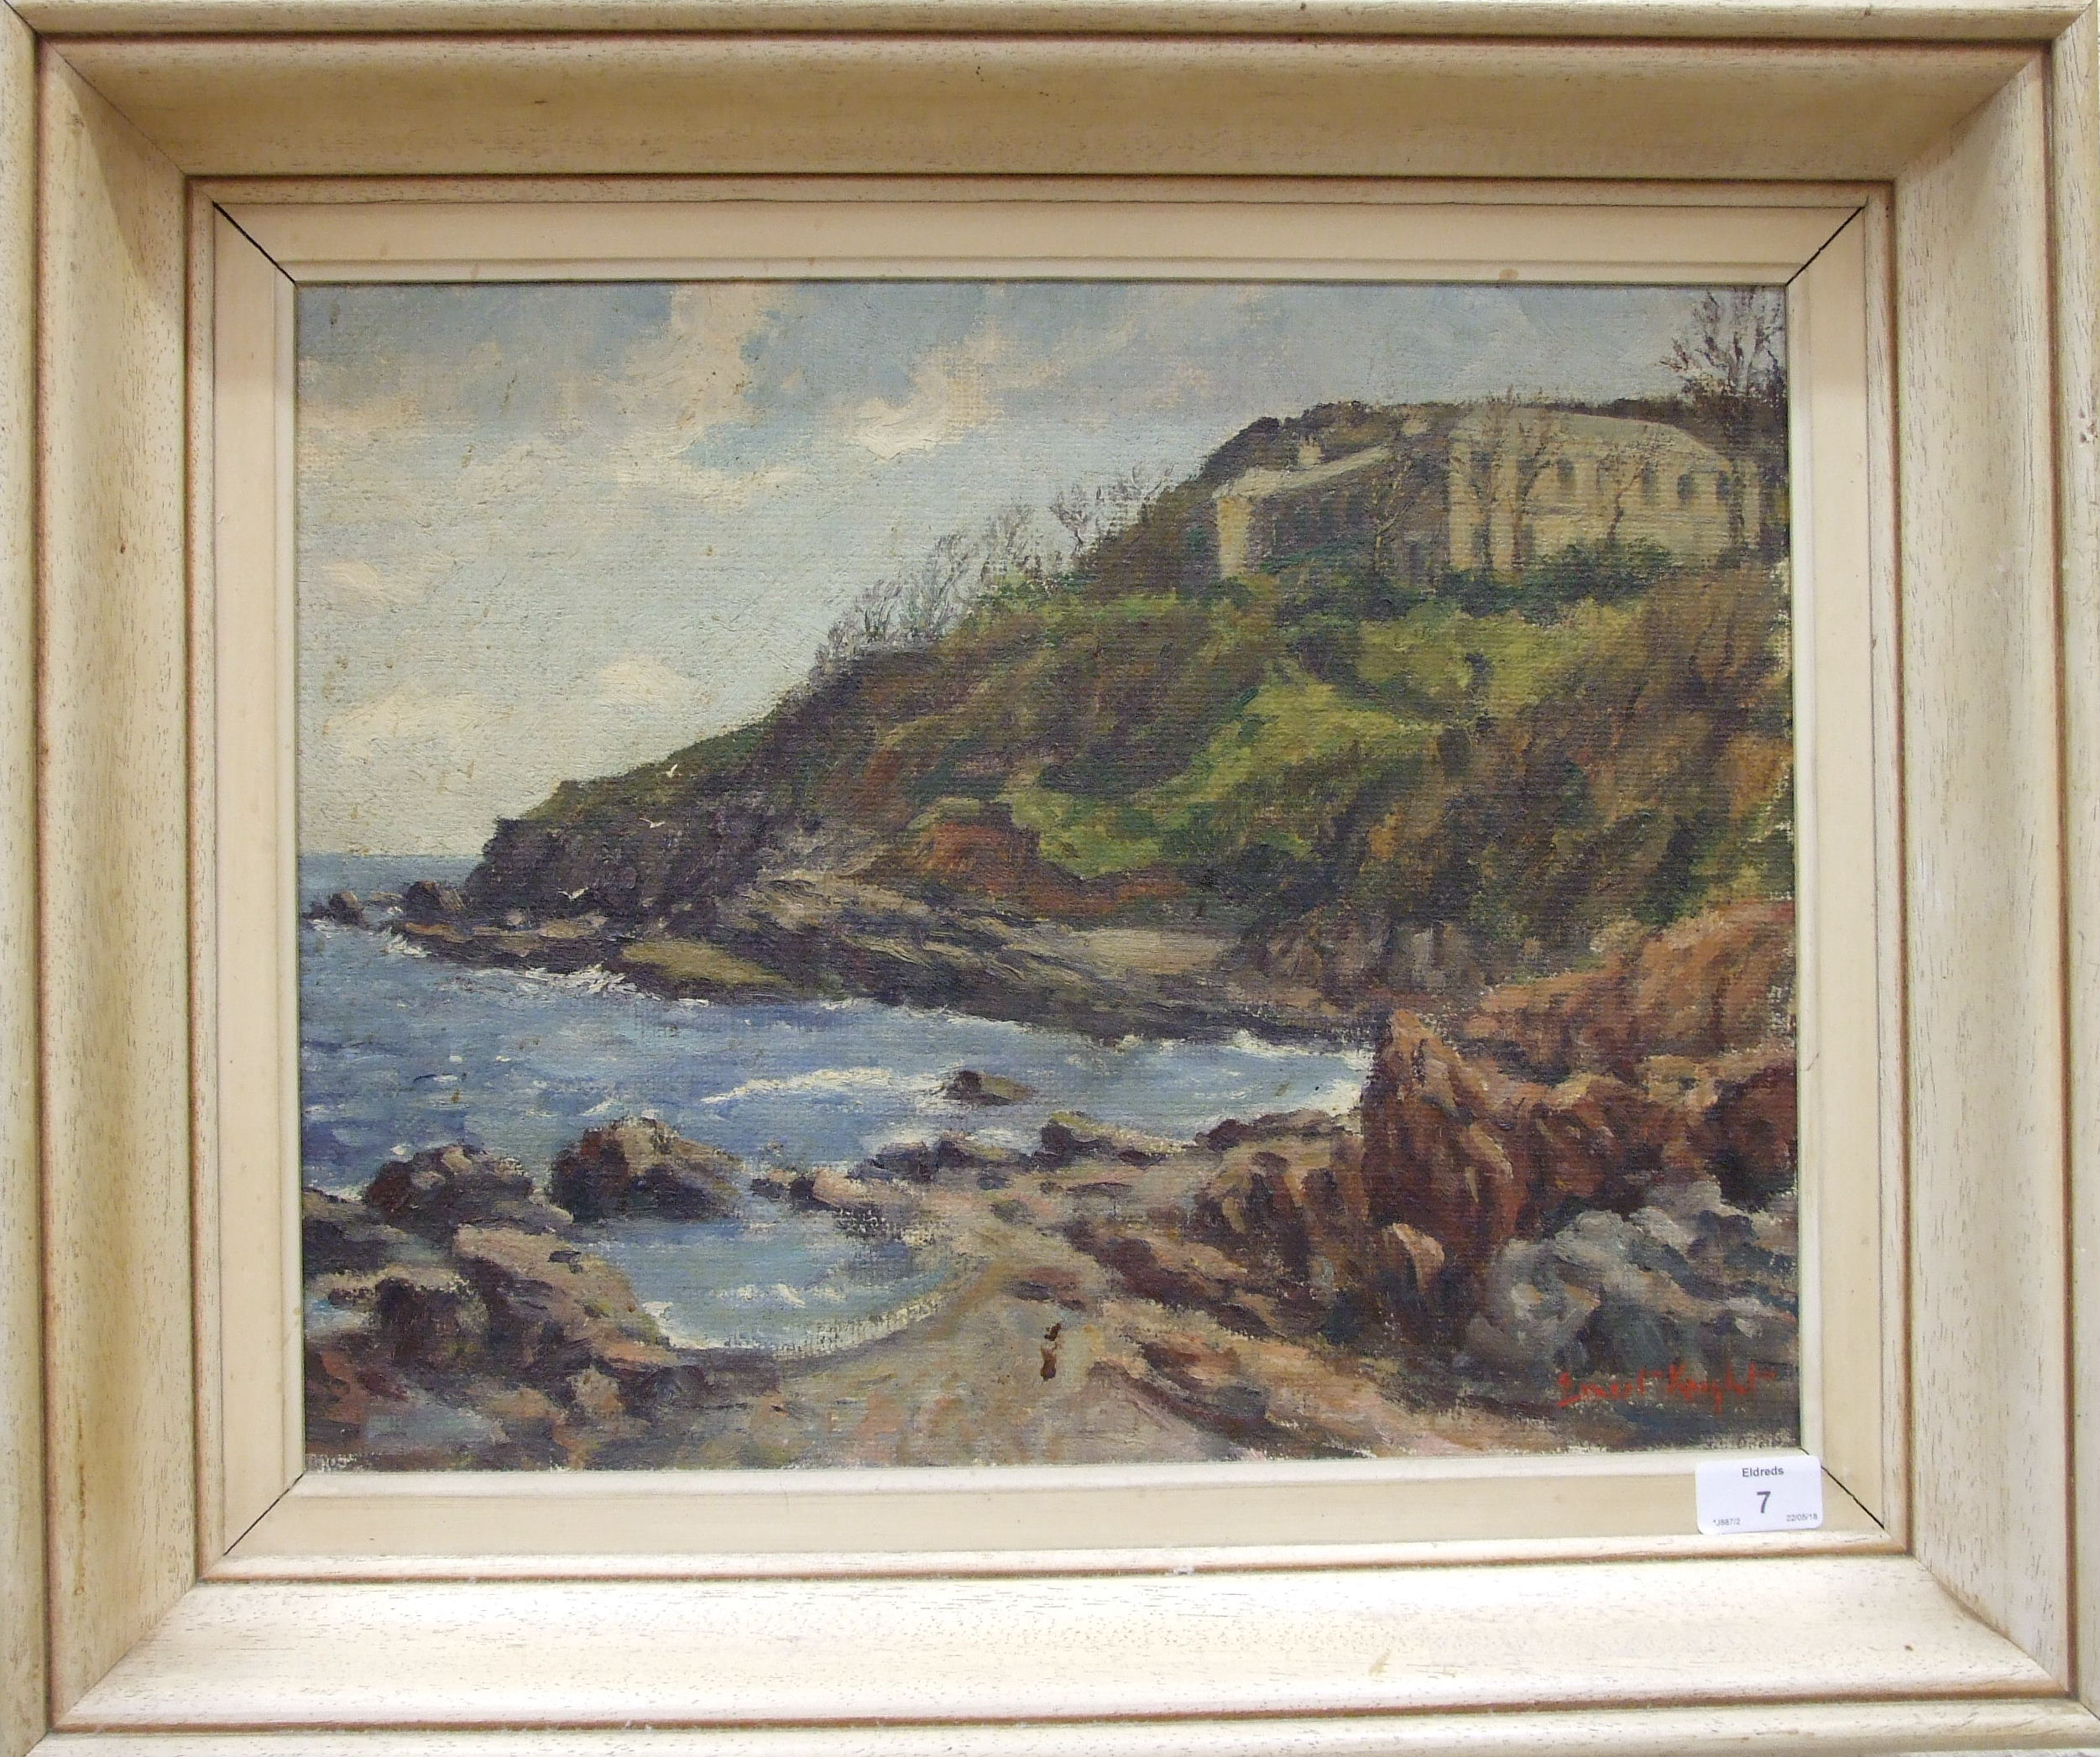 •Ernest Knight (1915-1995) COASTAL SCENE WITH BUILDING OVERLOOKING A ROCKY SHORE Signed oil on